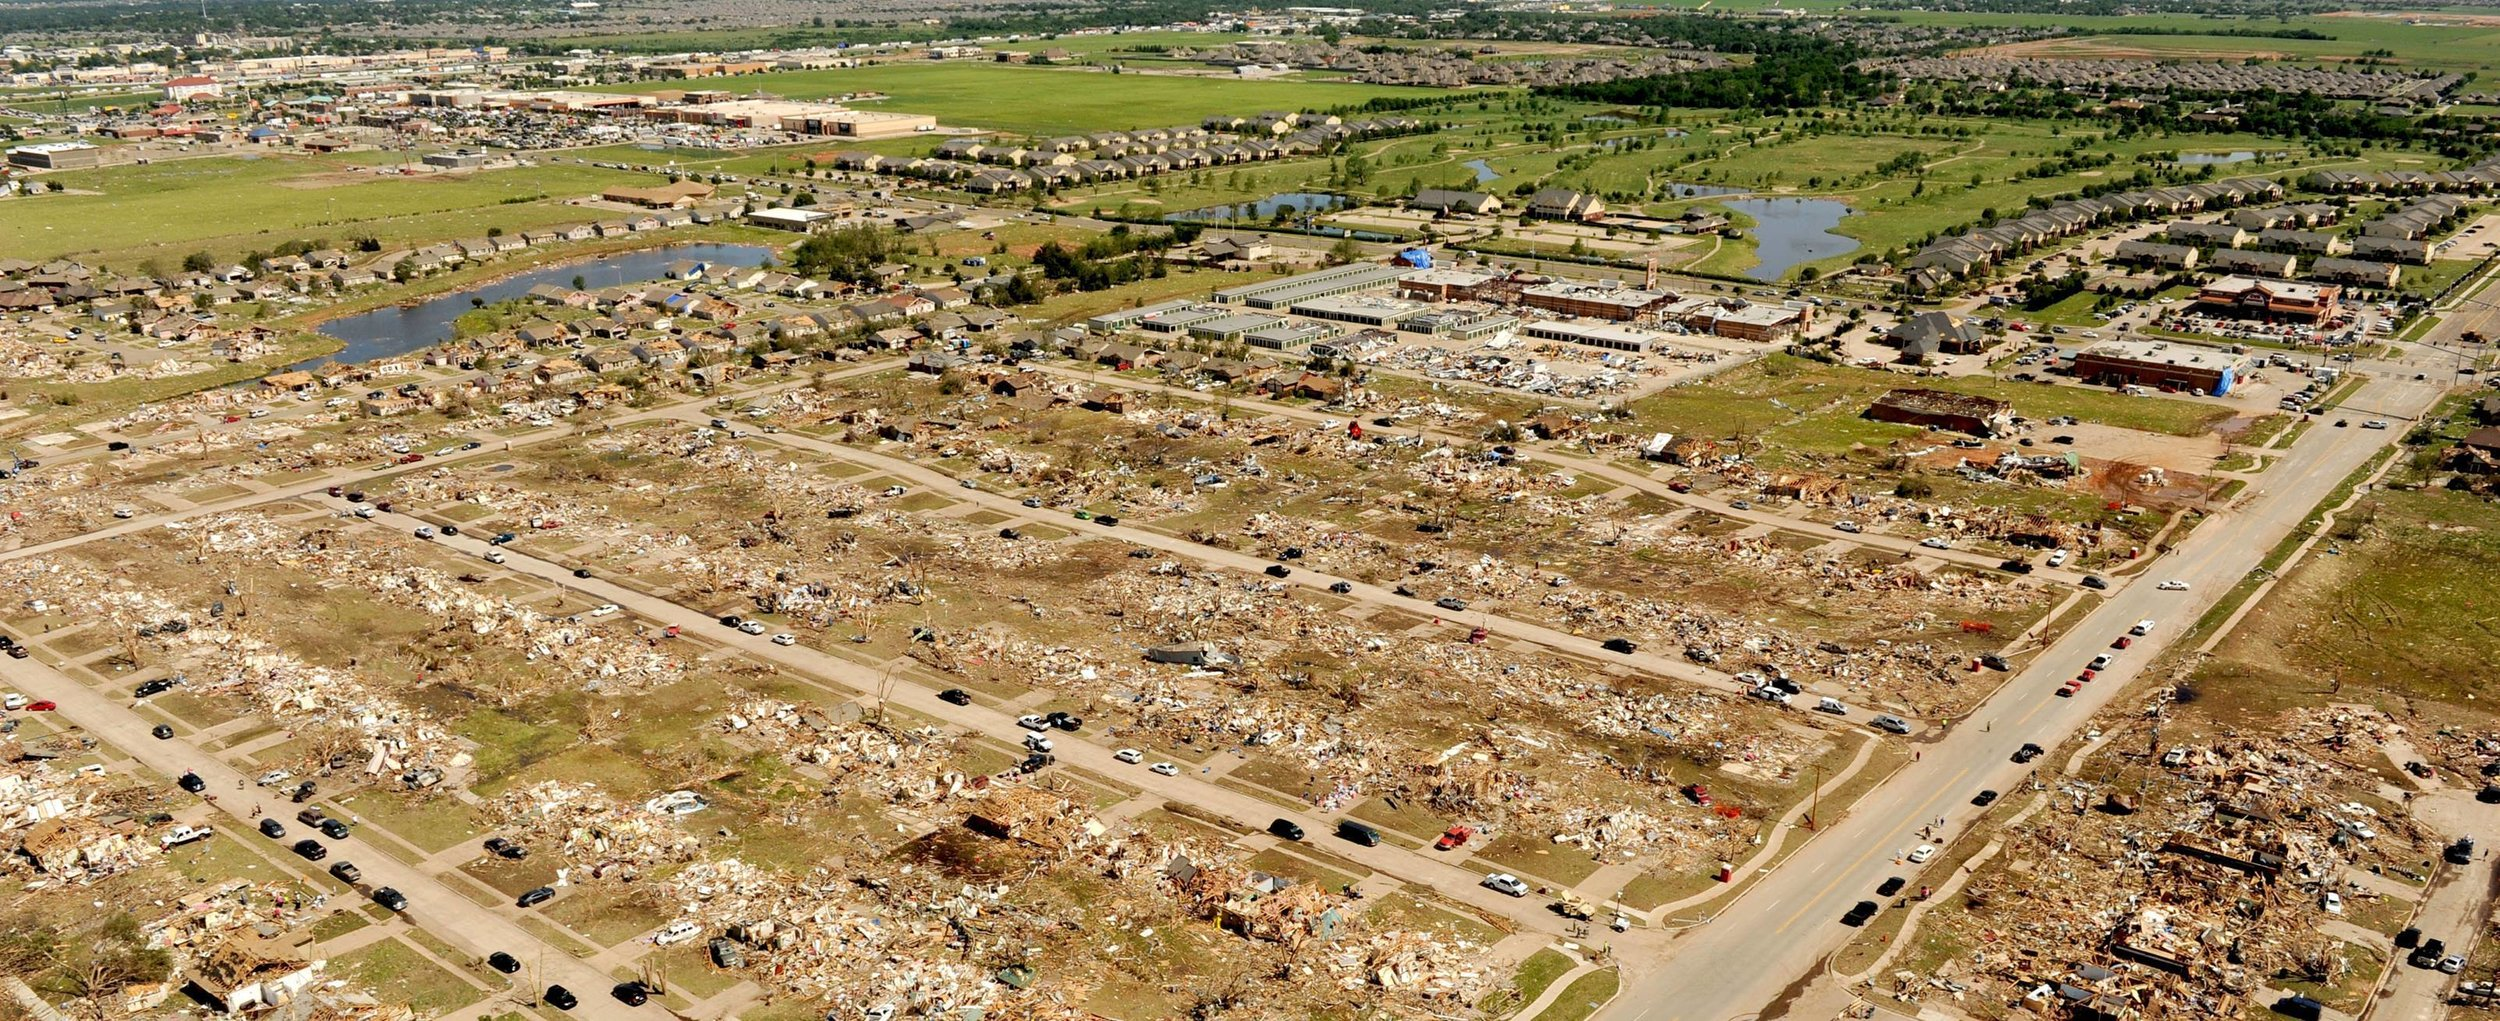 DESTRUCTION FROM THE MAY 2013 TORNADO